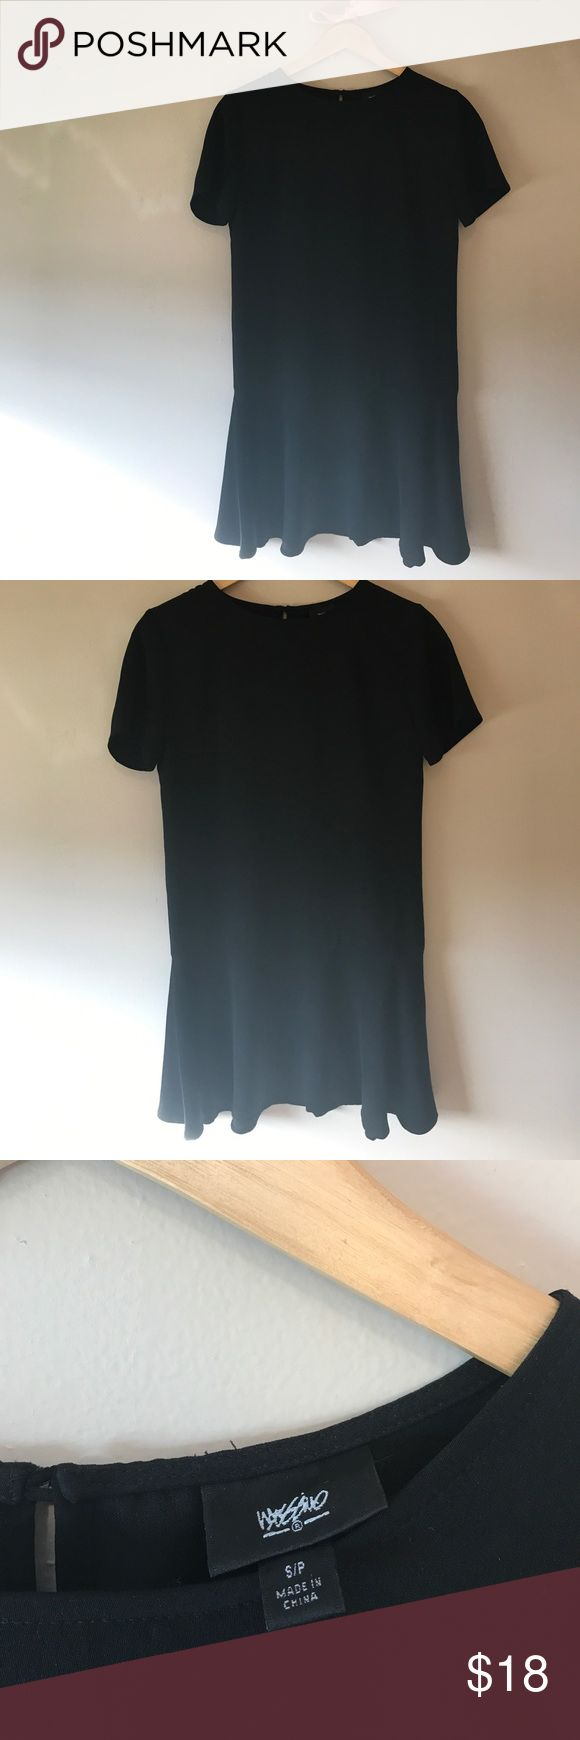 Mossimo Black Peplum Dress NWOT. Adorable Mossimo Black Peplum Dress. Could be worn with leggings or even jeans for a laid back chic look. Light weight material with tiny slit in the back towards neckline with pretty metal Button enclosure. Excellent condition-worn once to try on but in new condition. Measures approx 34.5 inches long fr top of shoulder. Mossimo Supply Co Dresses Midi